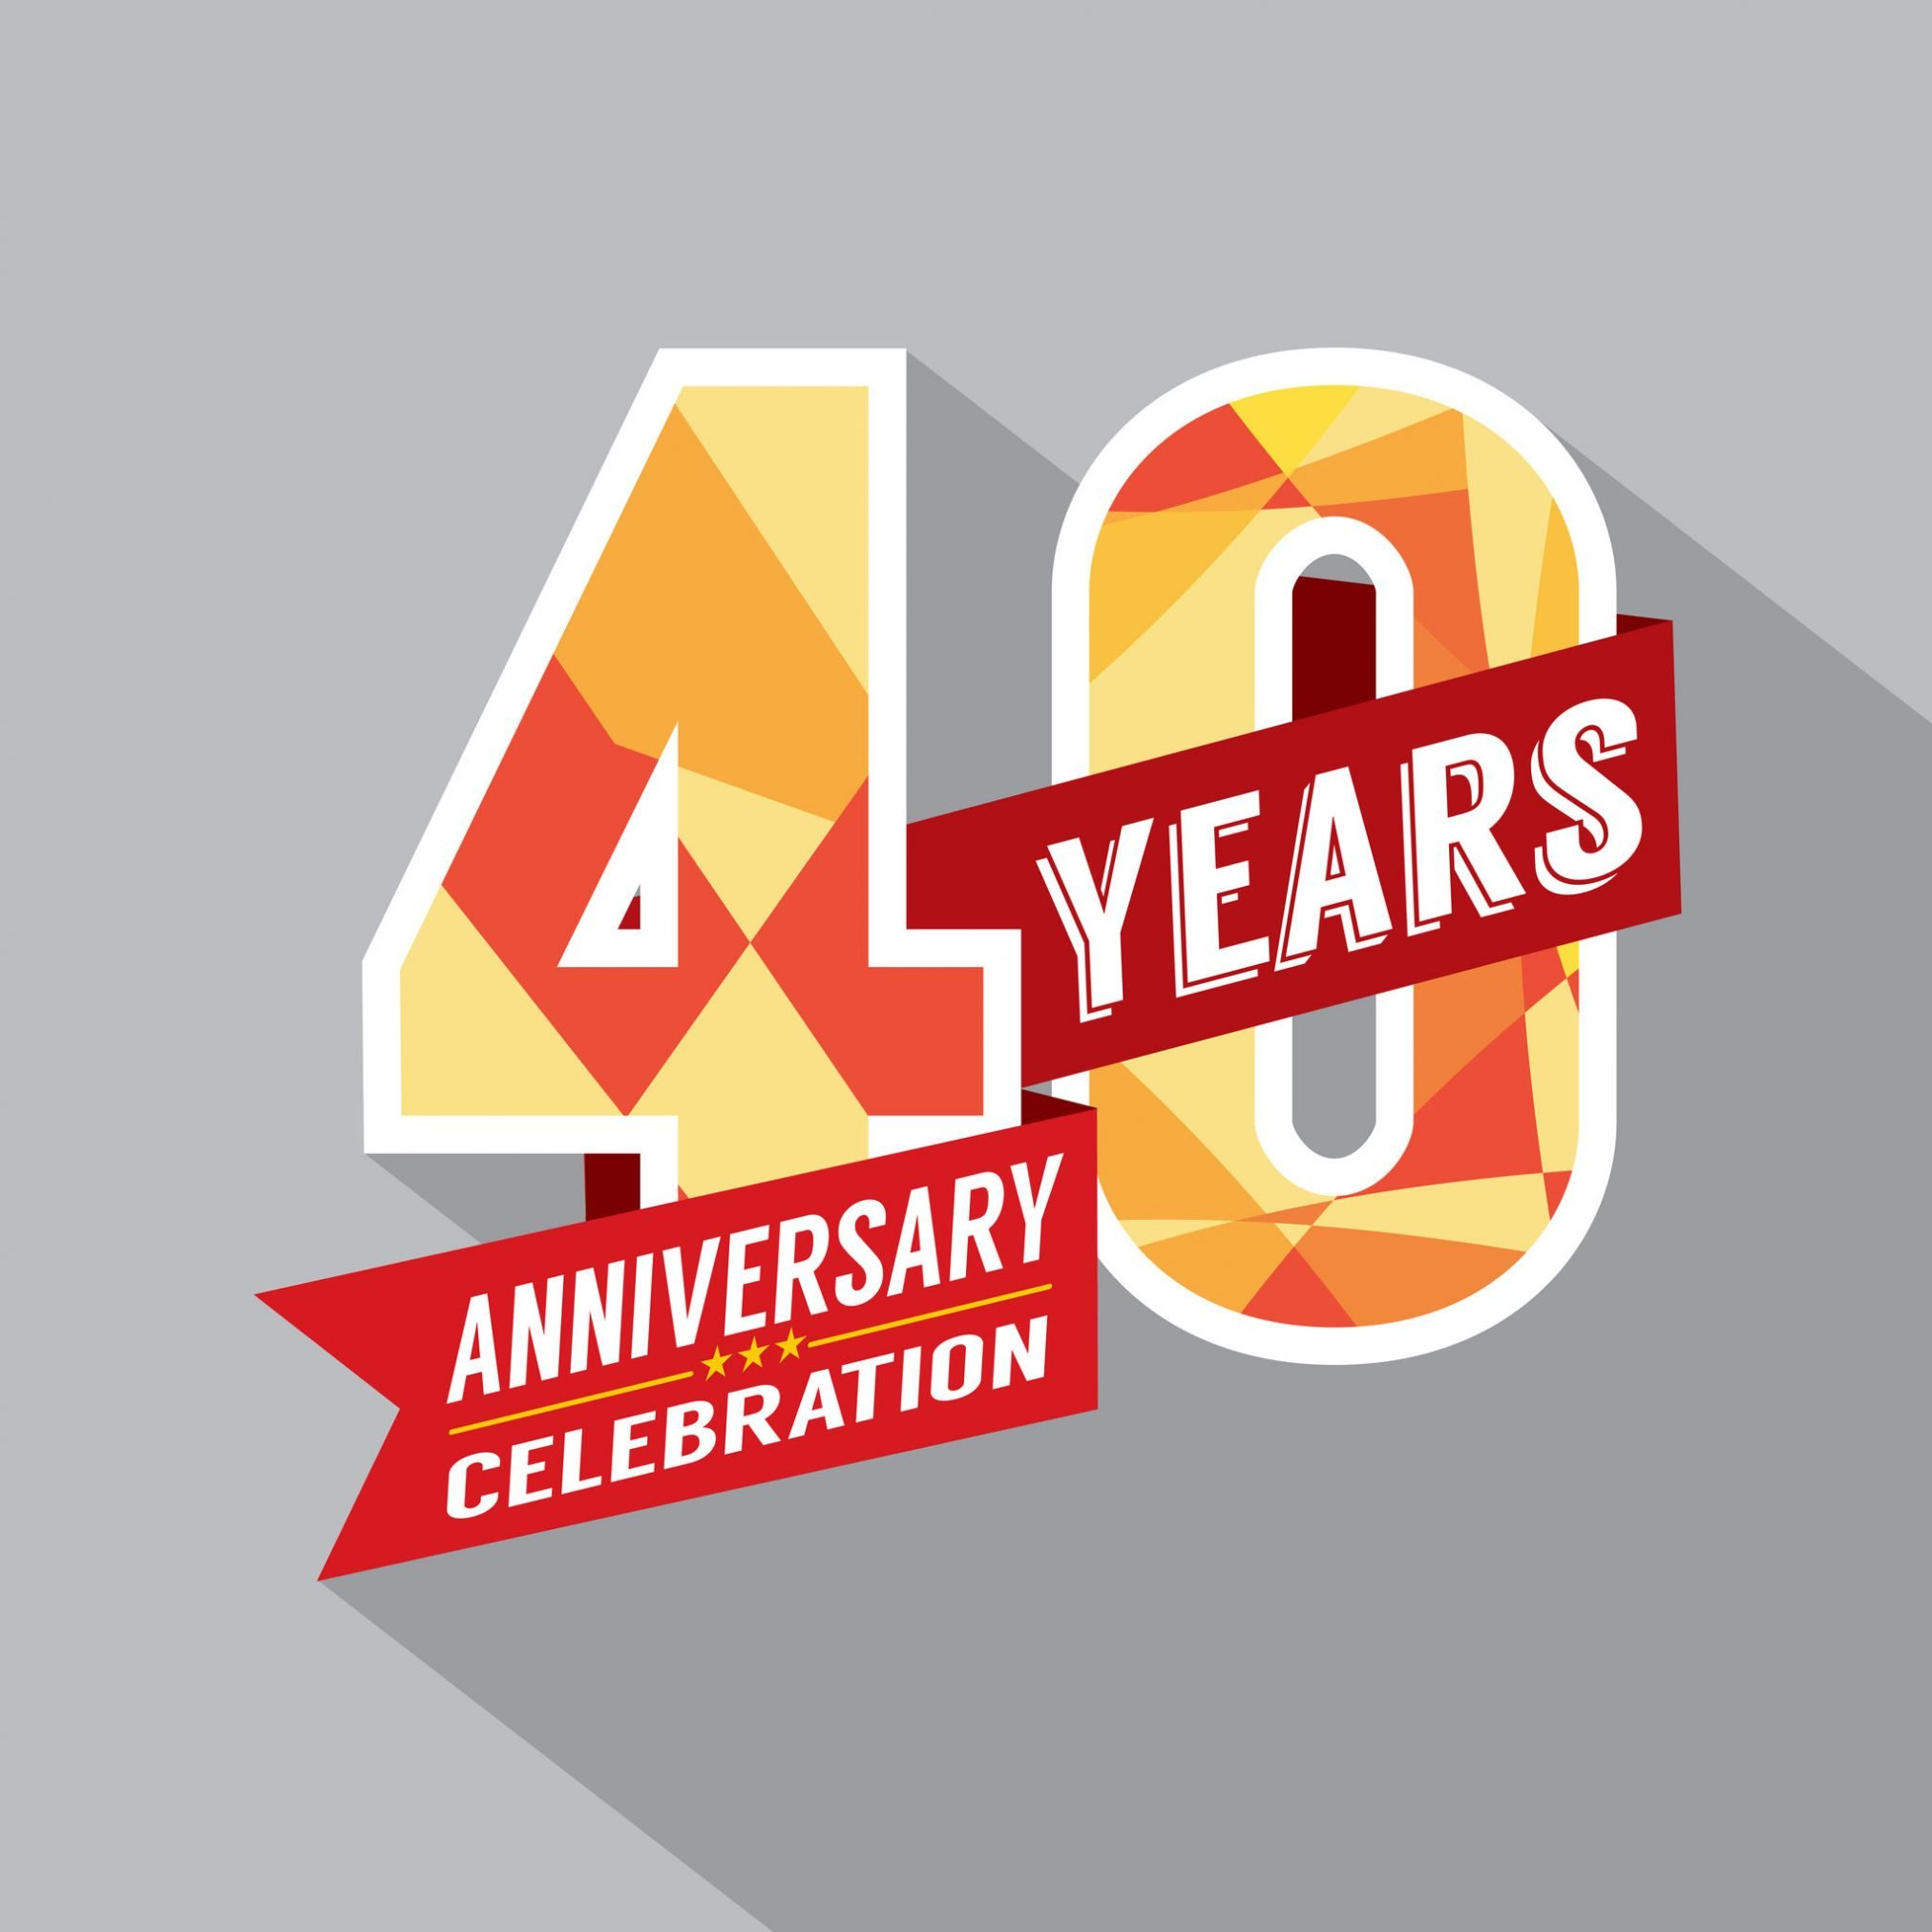 40 years anniversary celebration